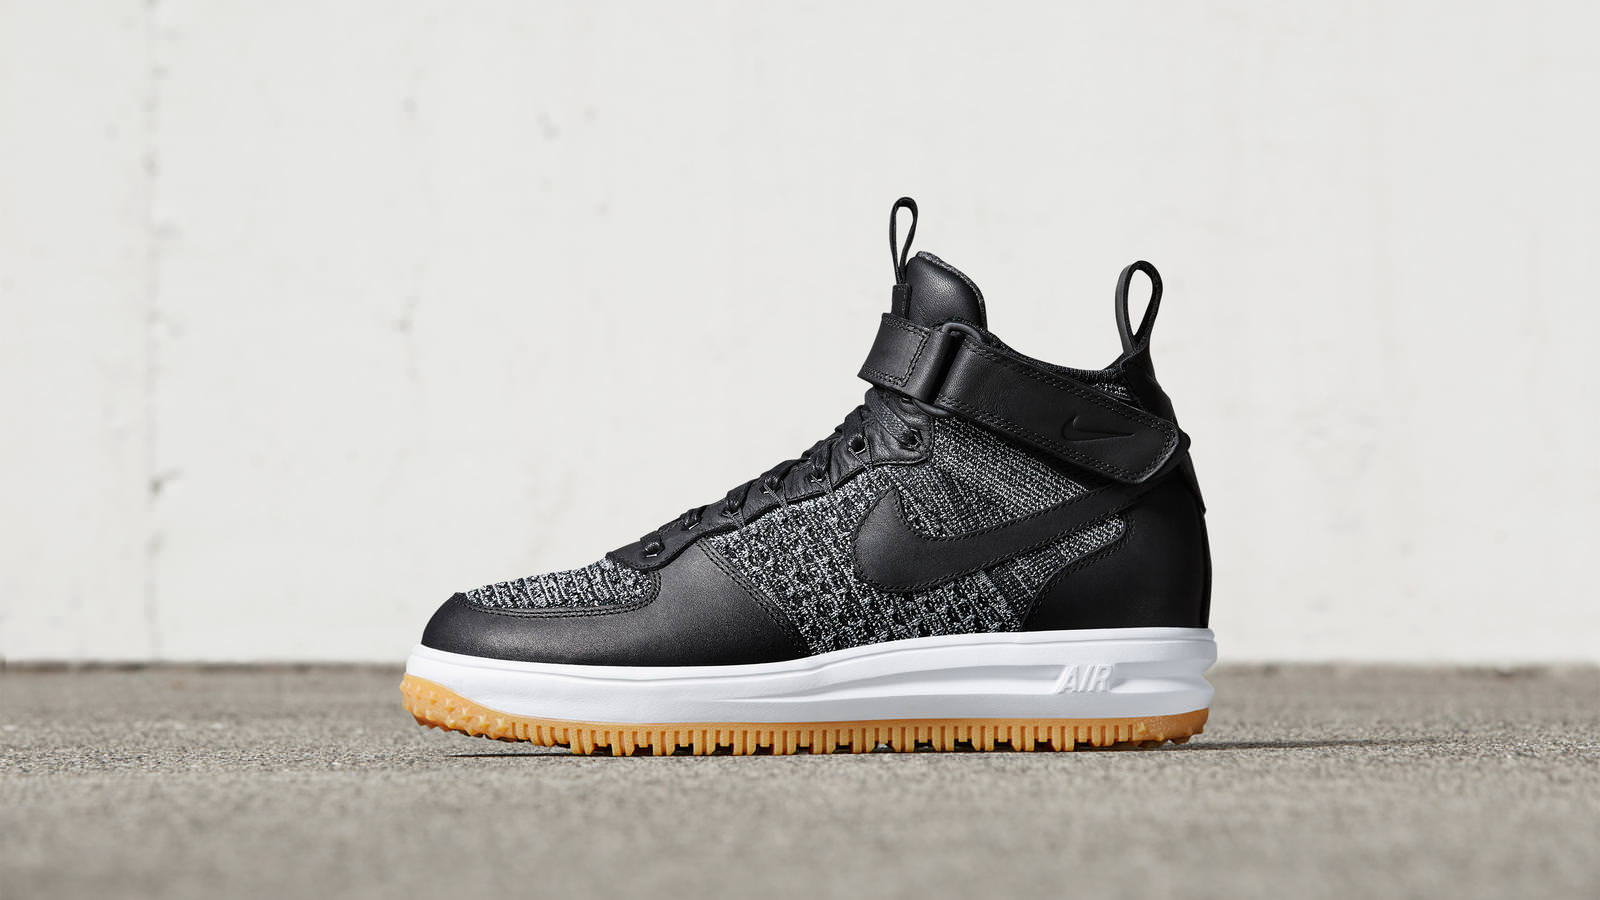 58194846a4bfa69a4ded421b_161026_footwear_sneakerboot_p_0051r_hd_1600